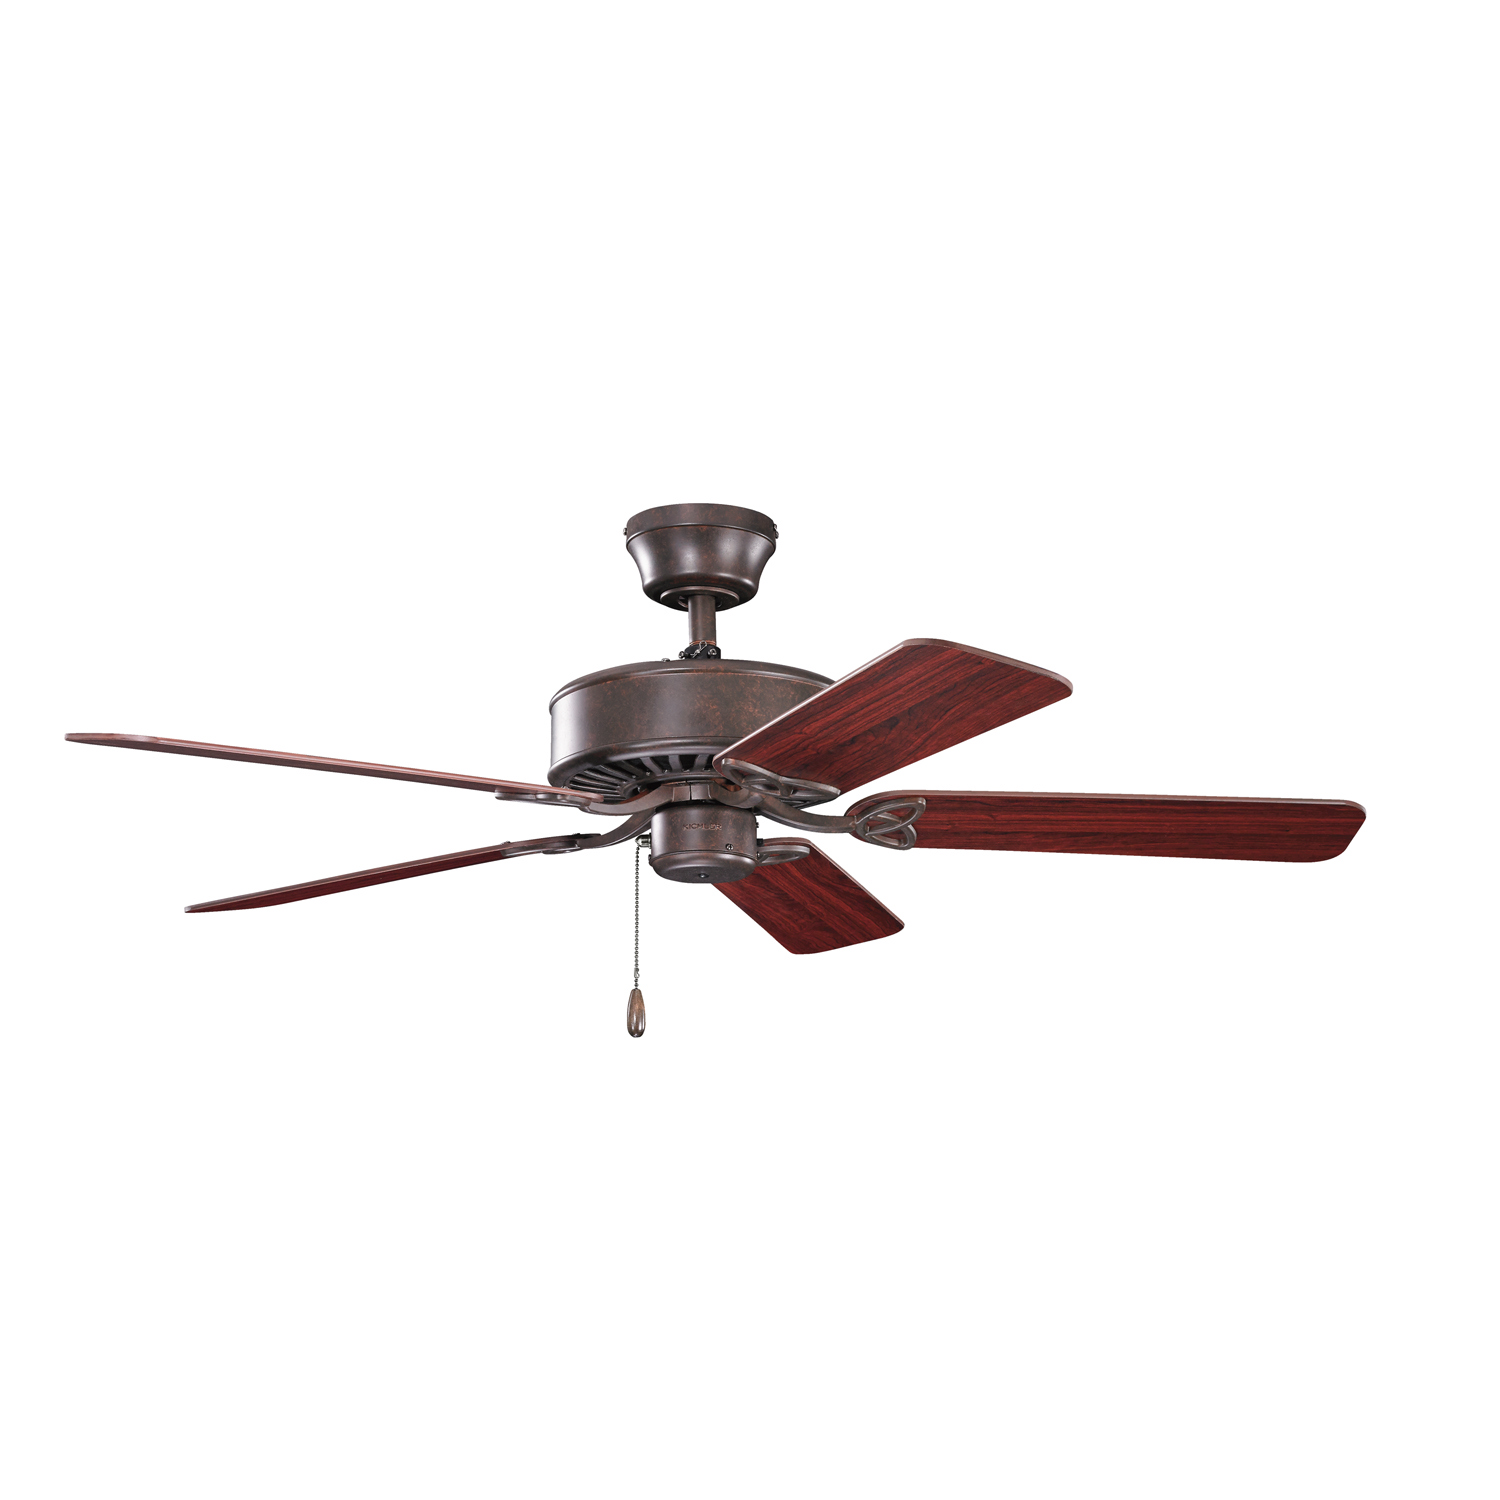 50 inchCeiling Fan from the Renew ES collection by Kichler 330100TZ